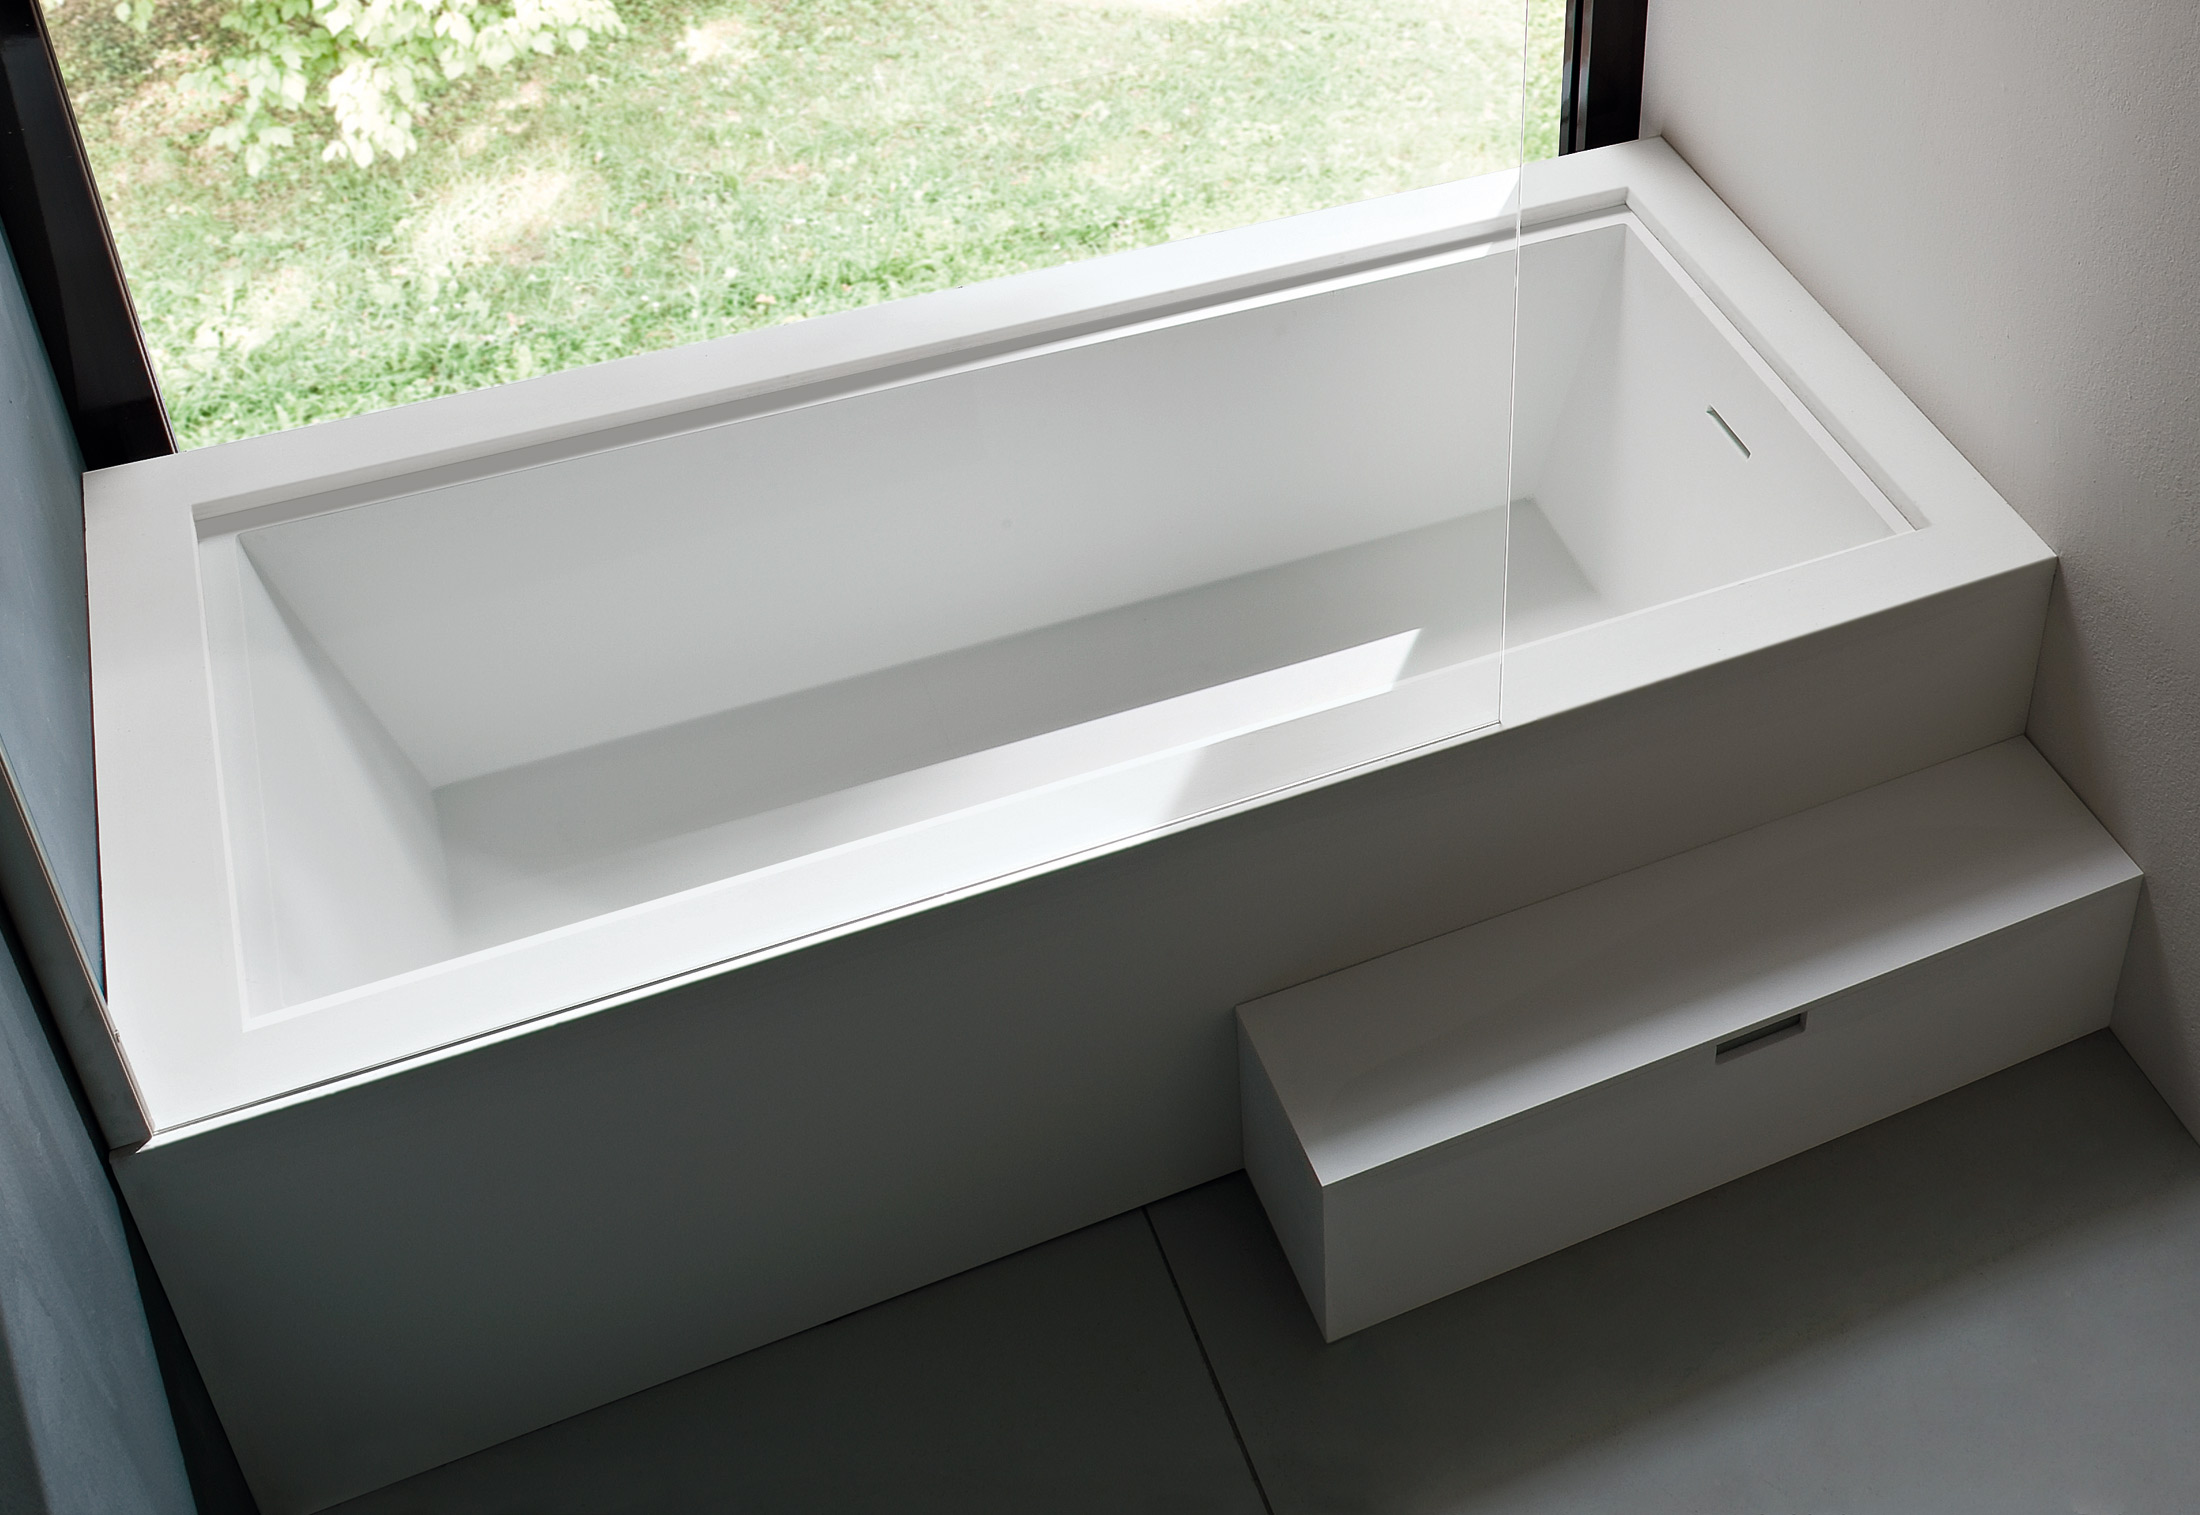 ... Unico Bathtub With Top Cover ...